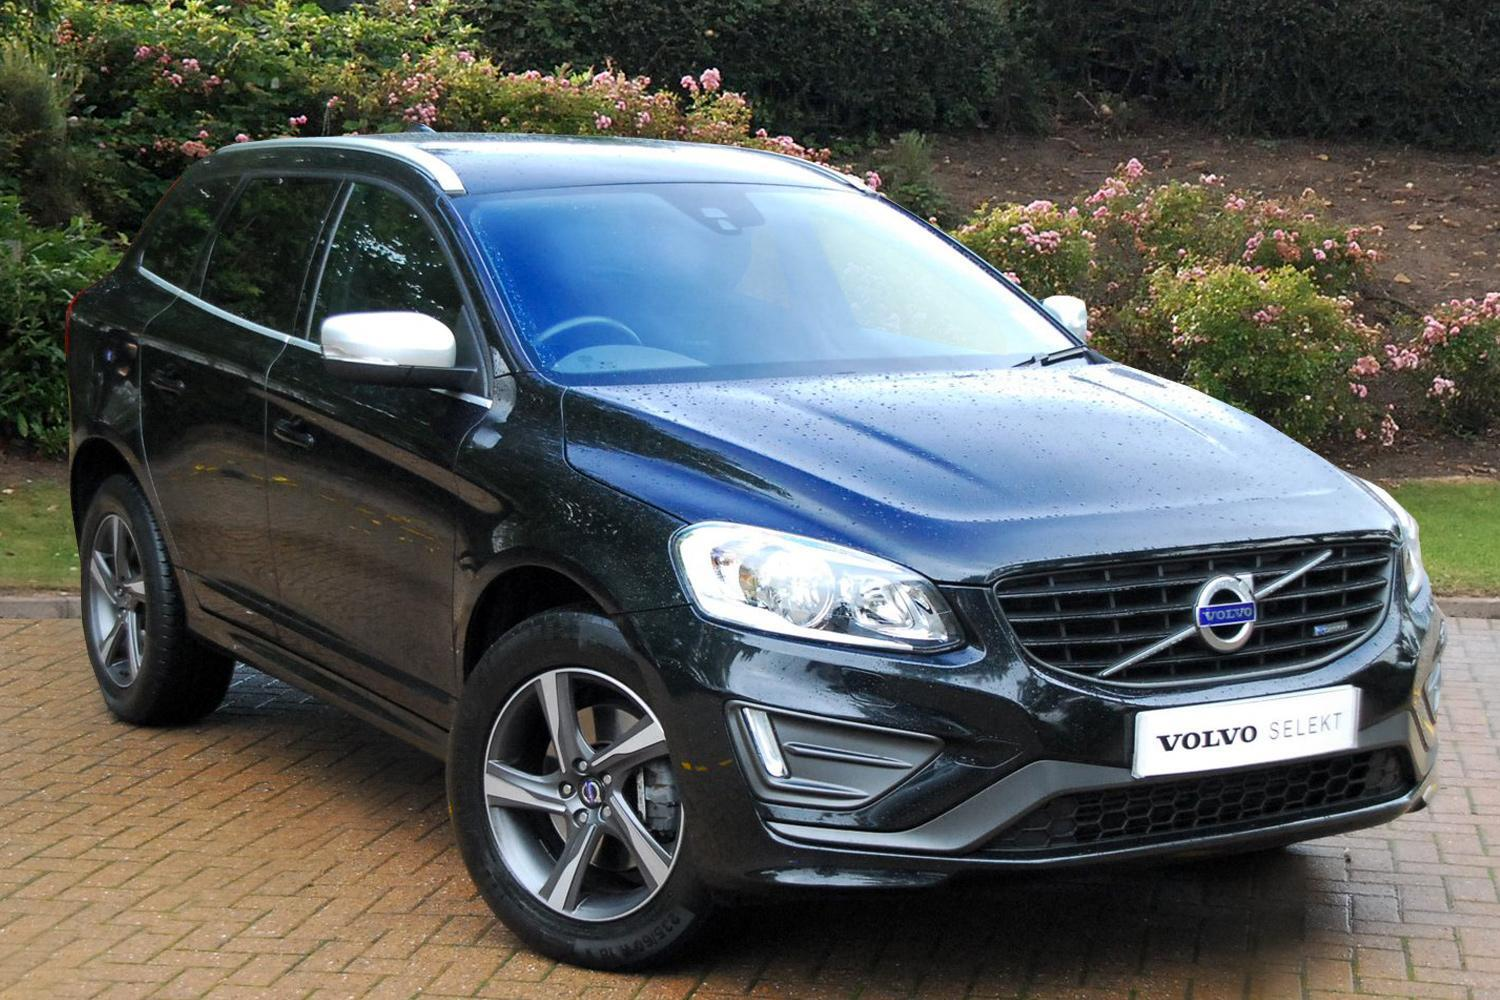 used volvo xc60 d4 181 r design 5dr awd geartronic diesel estate for sale bristol street motors. Black Bedroom Furniture Sets. Home Design Ideas